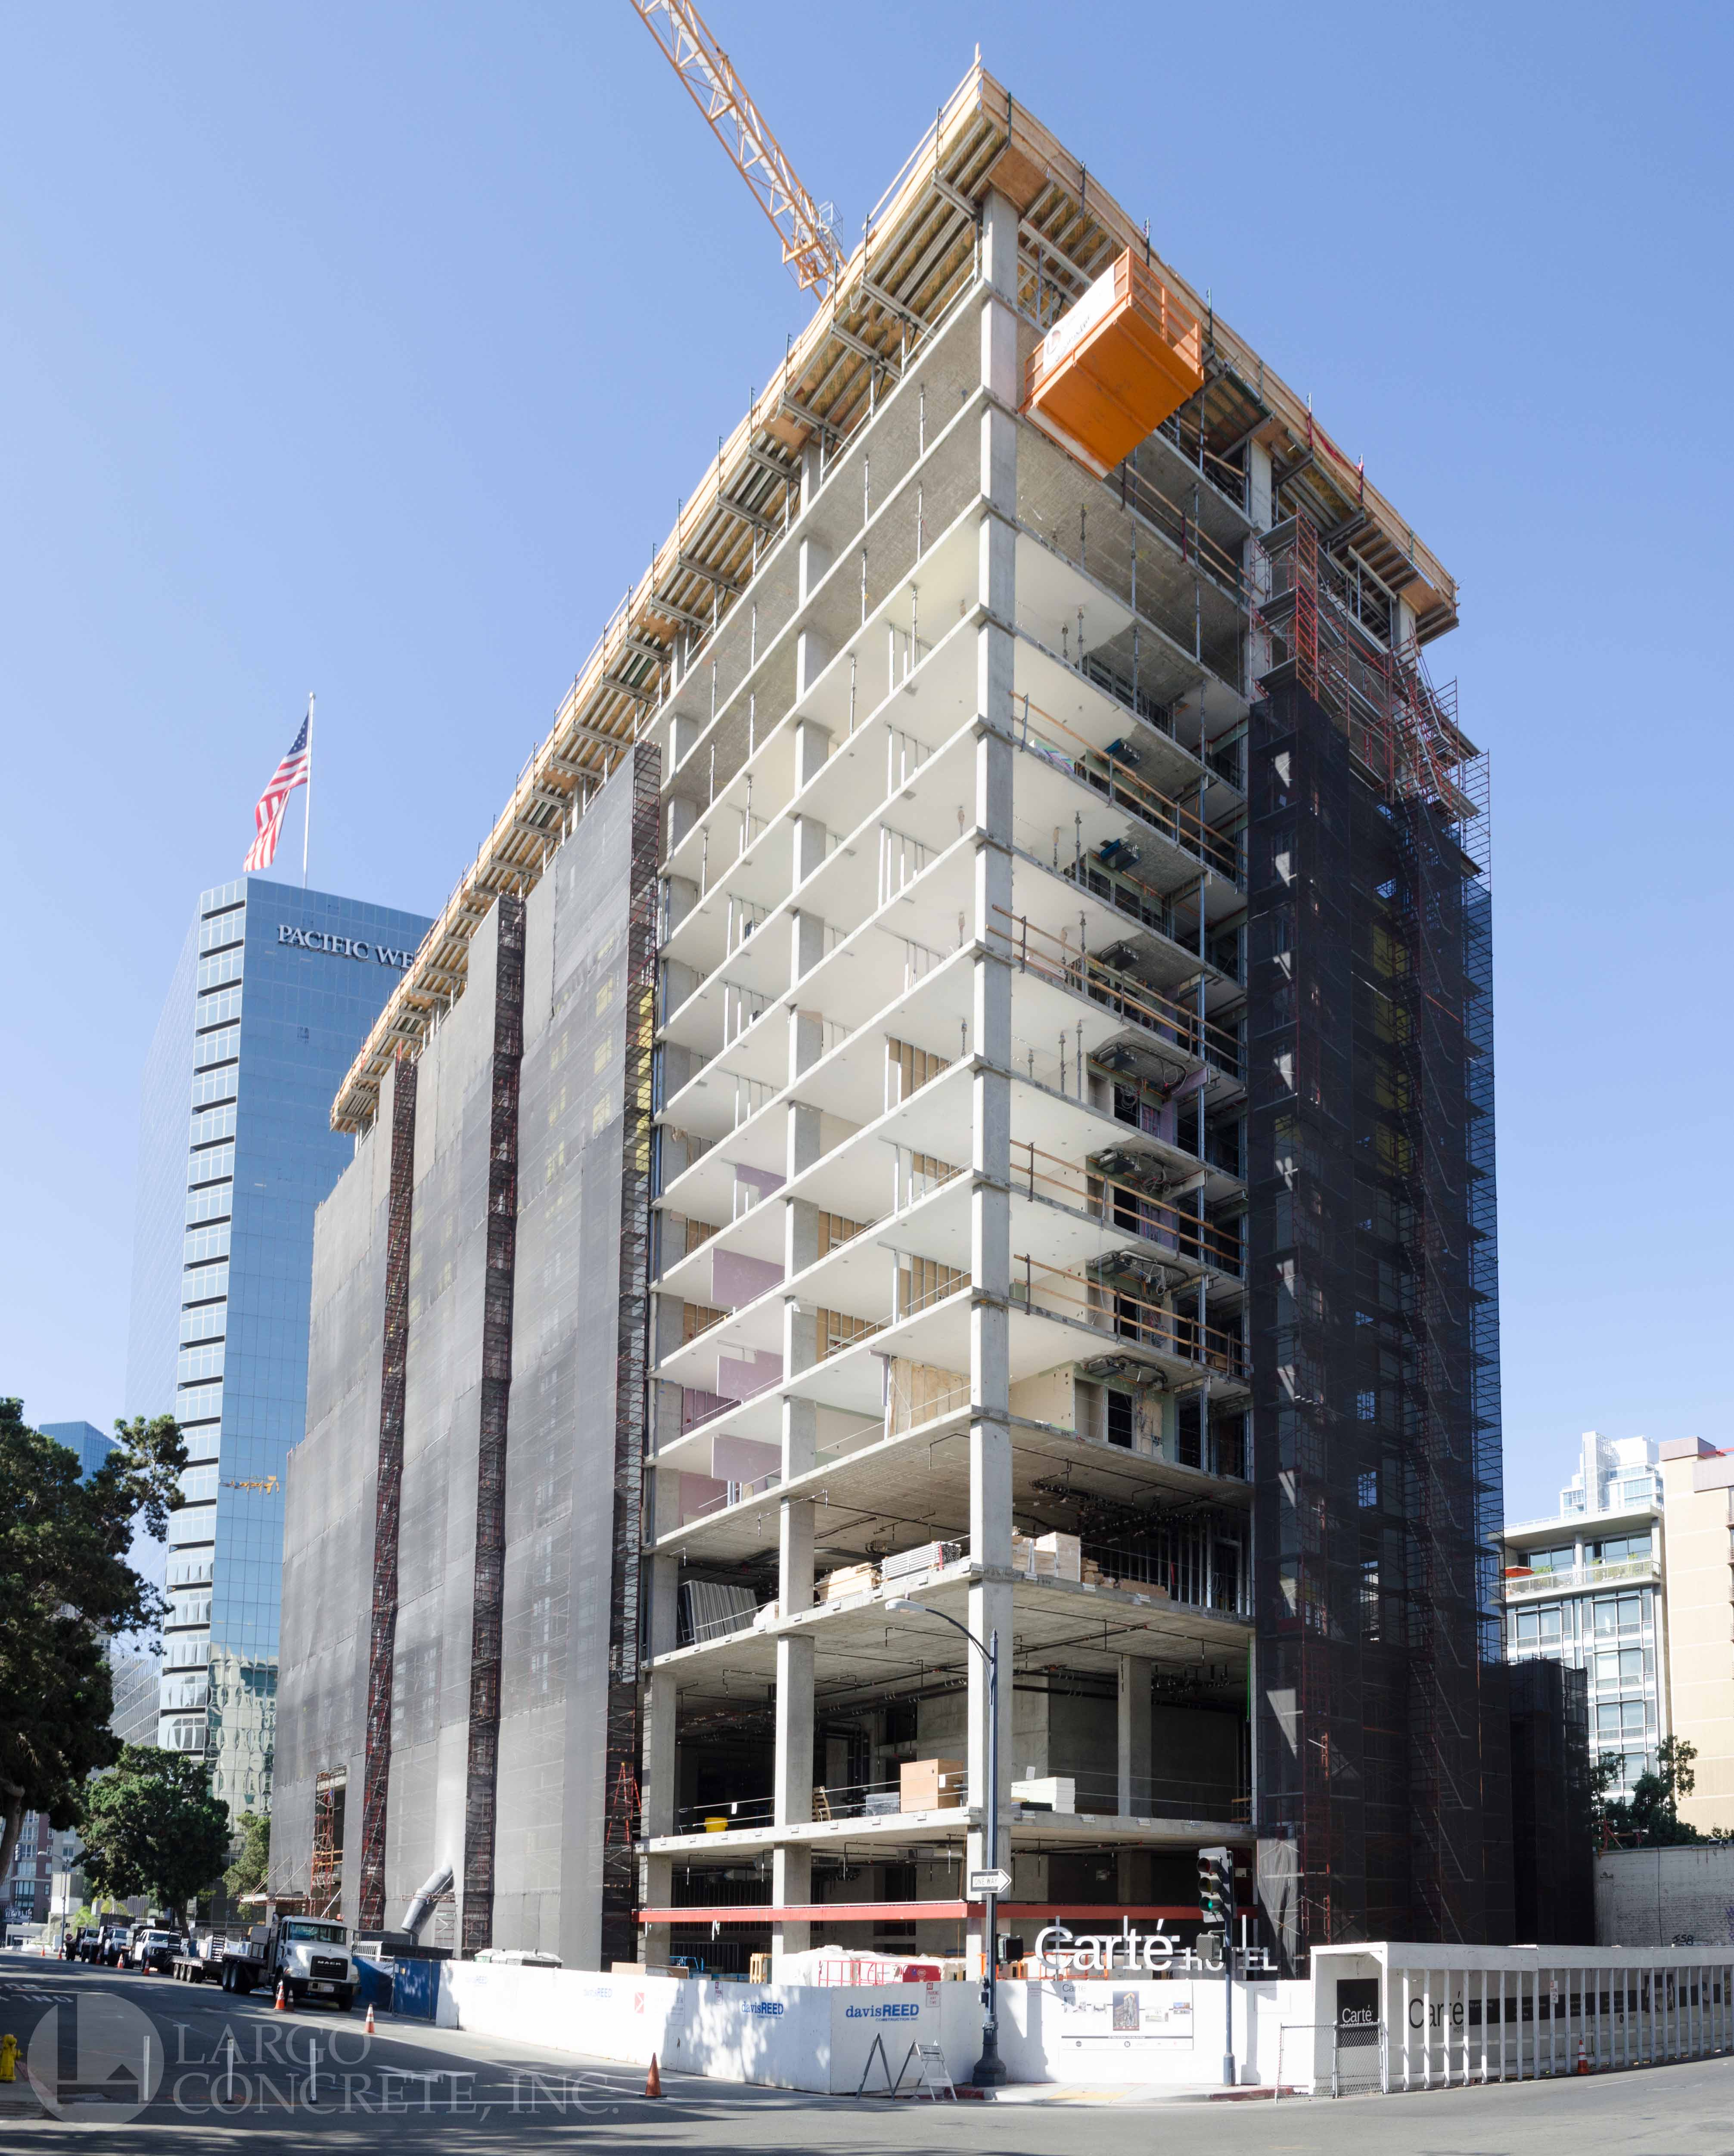 Carte Hotel Tops Out in San Diego - Largo Concrete, Inc